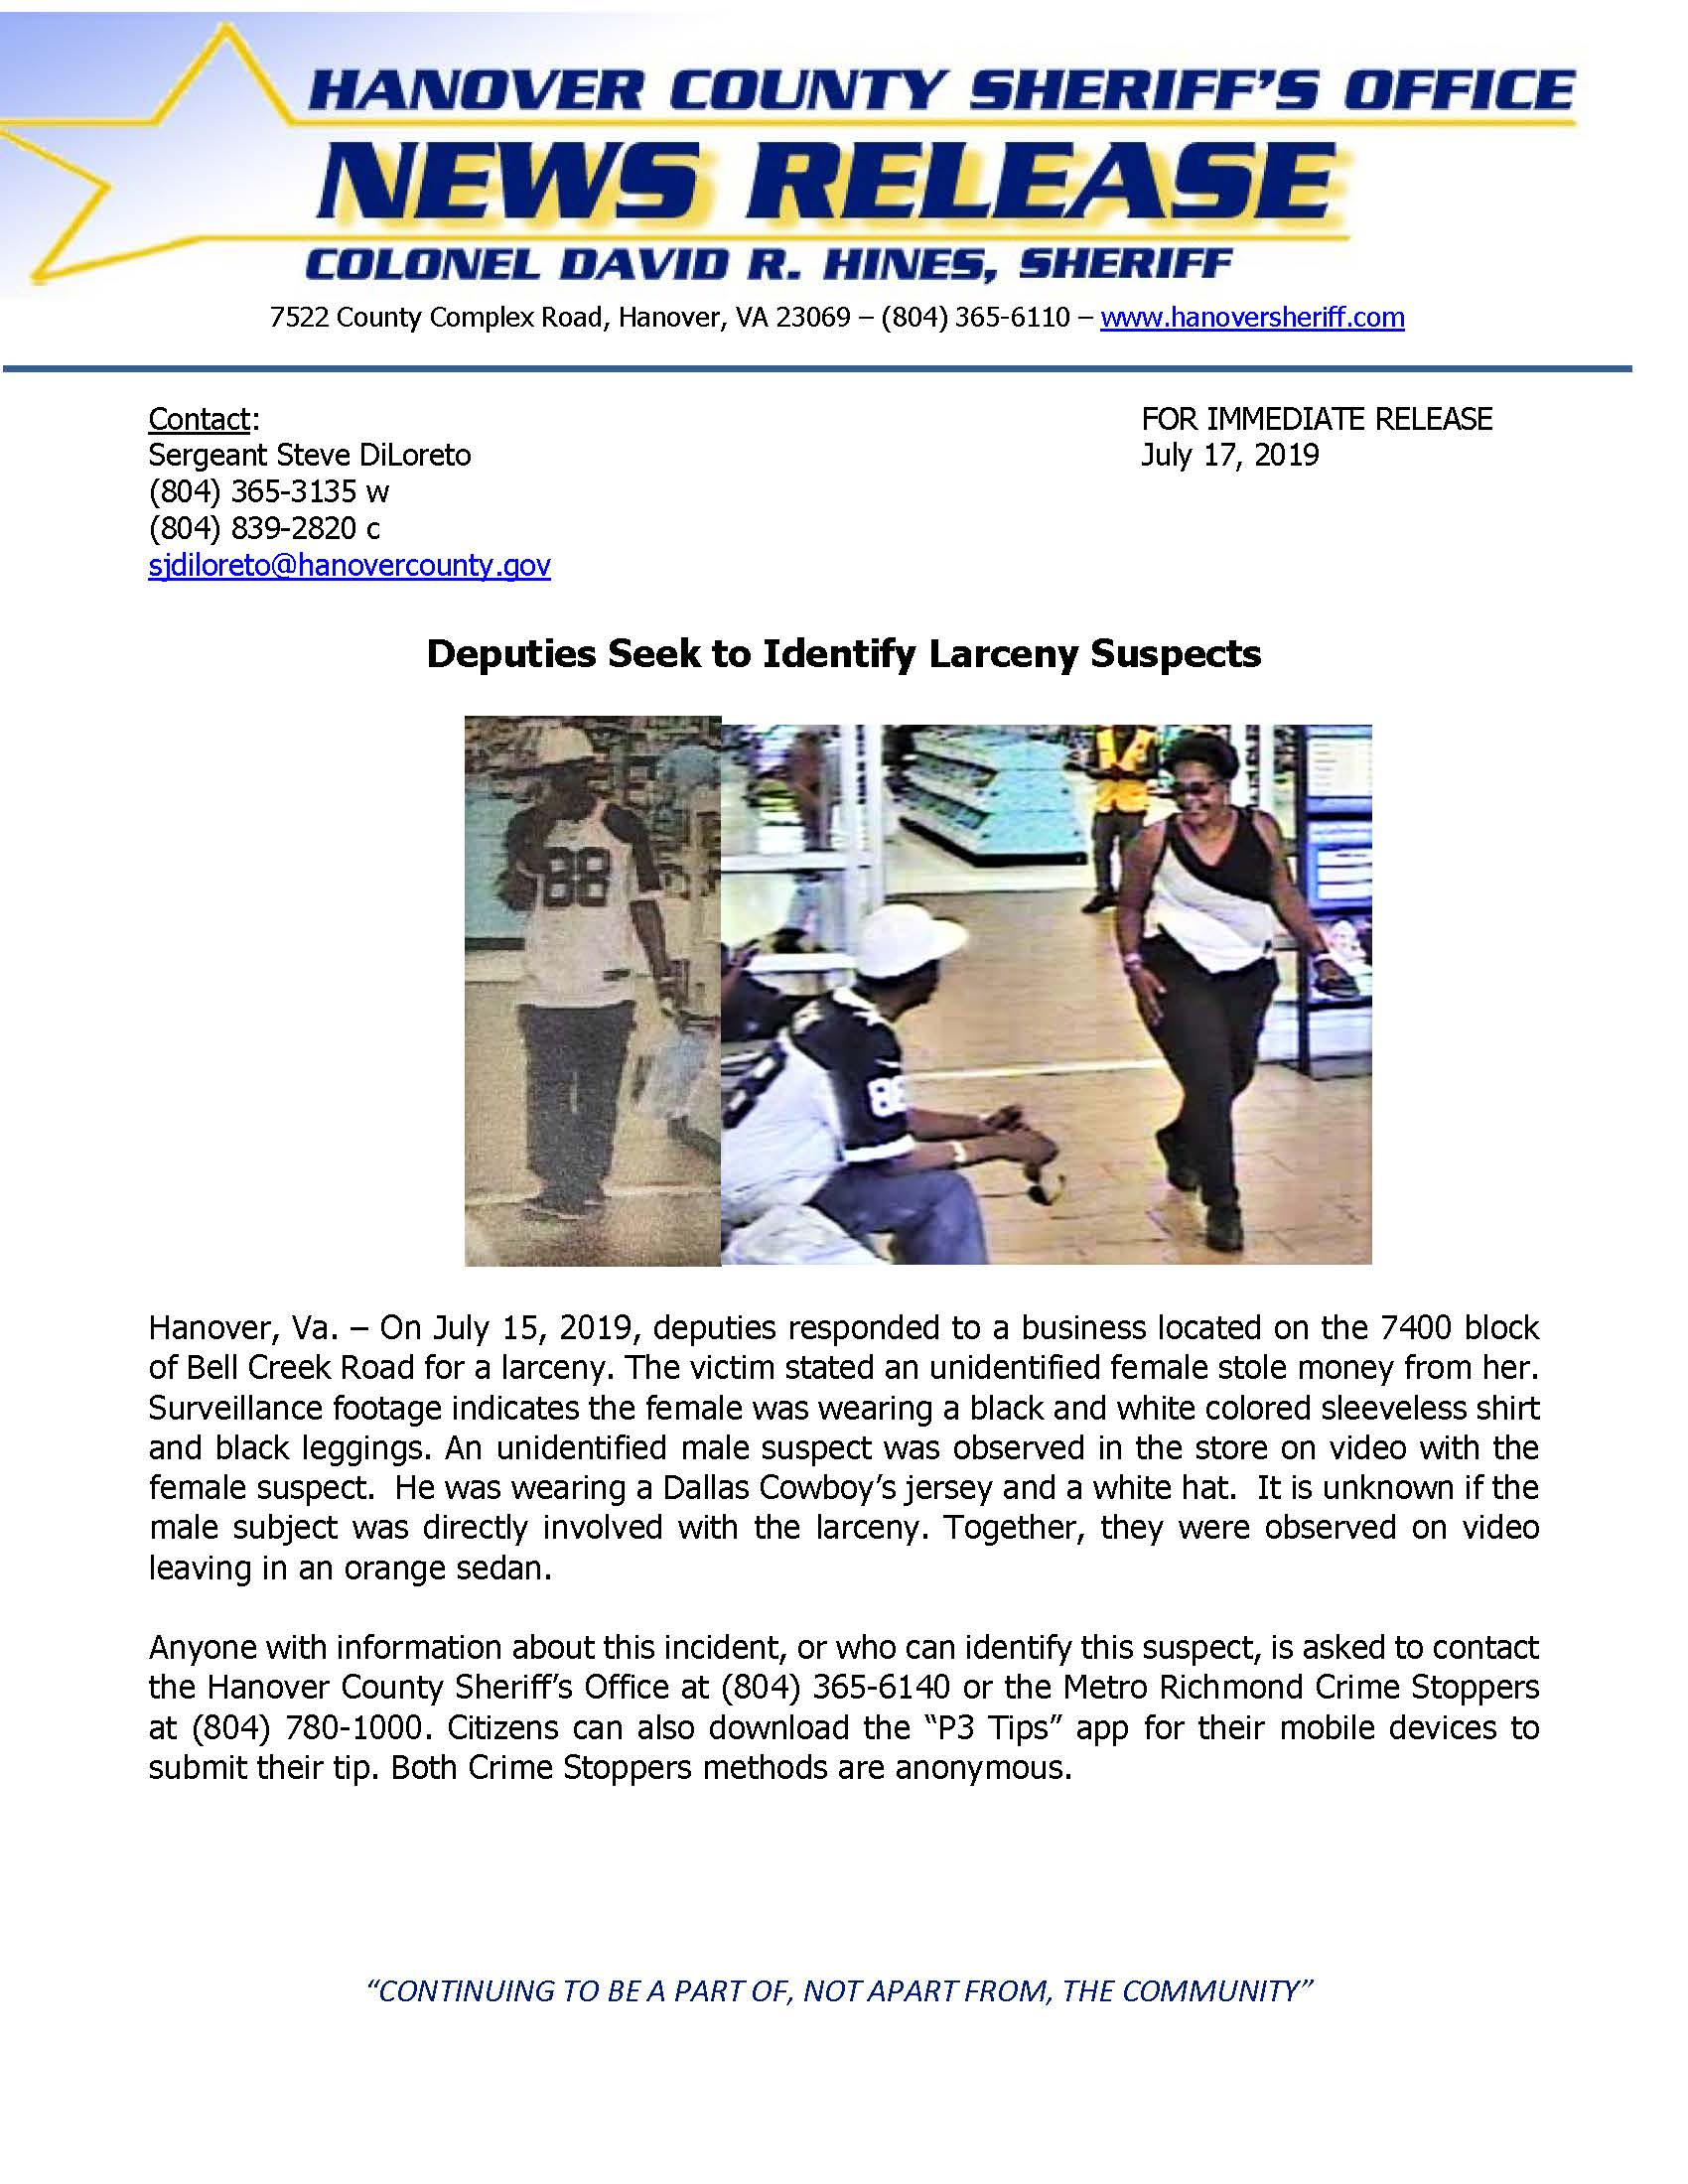 HCSO - Deputies Seek to Identify Larceny Suspect- July 15 2019